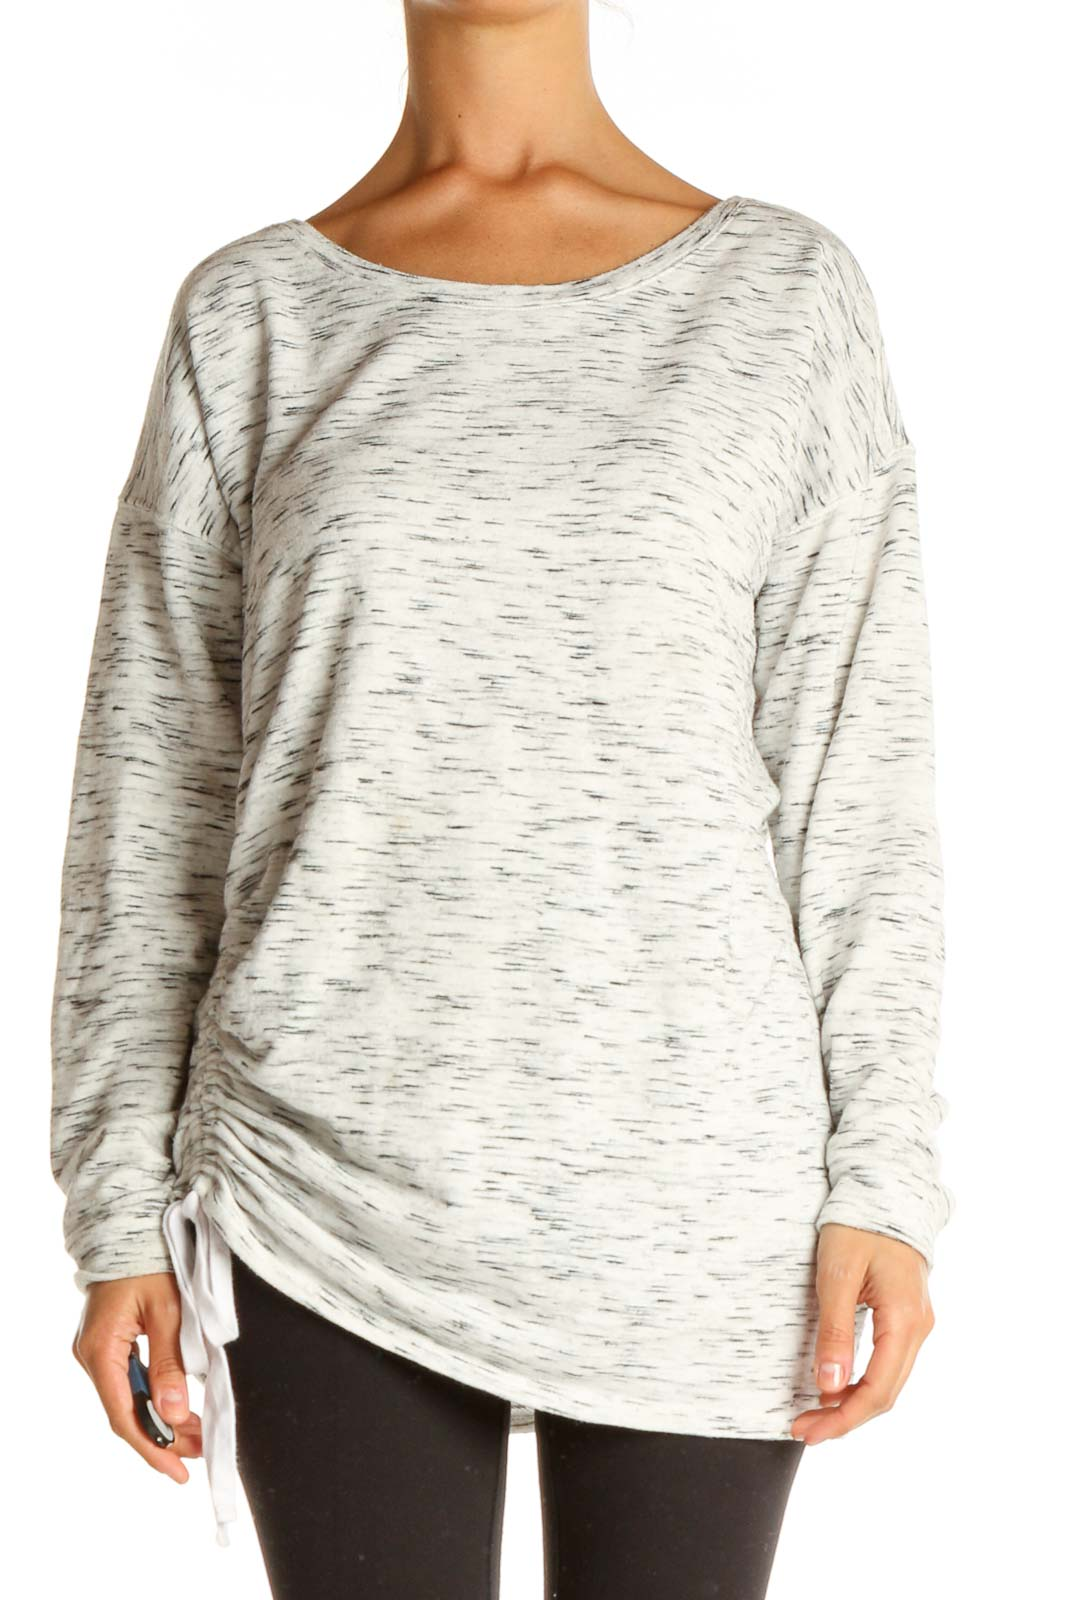 White Textured All Day Wear T-Shirt Front